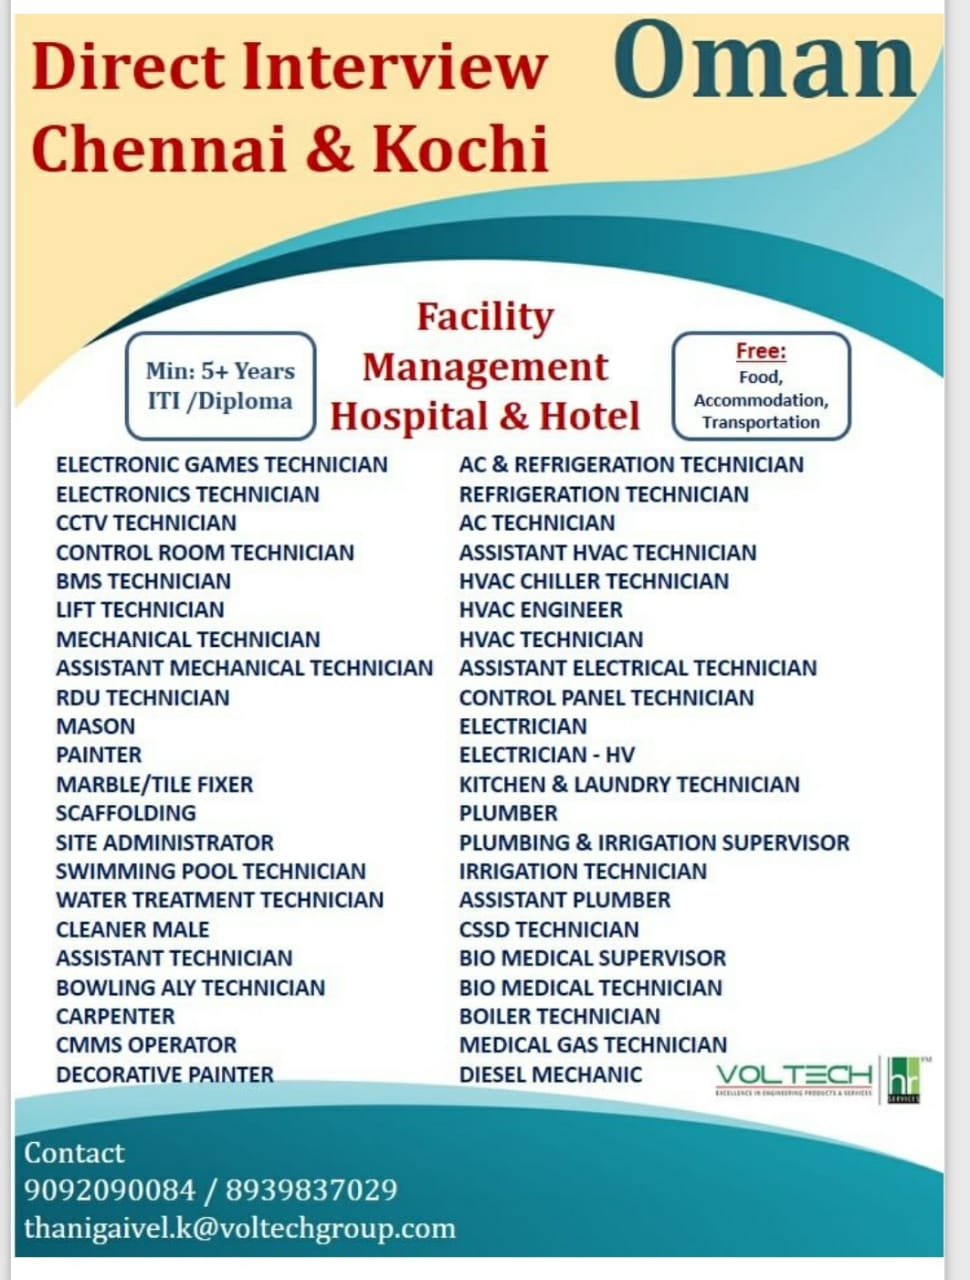 FACILITY MANAGEMENT HOSPITAL & HOTEL-OMAN